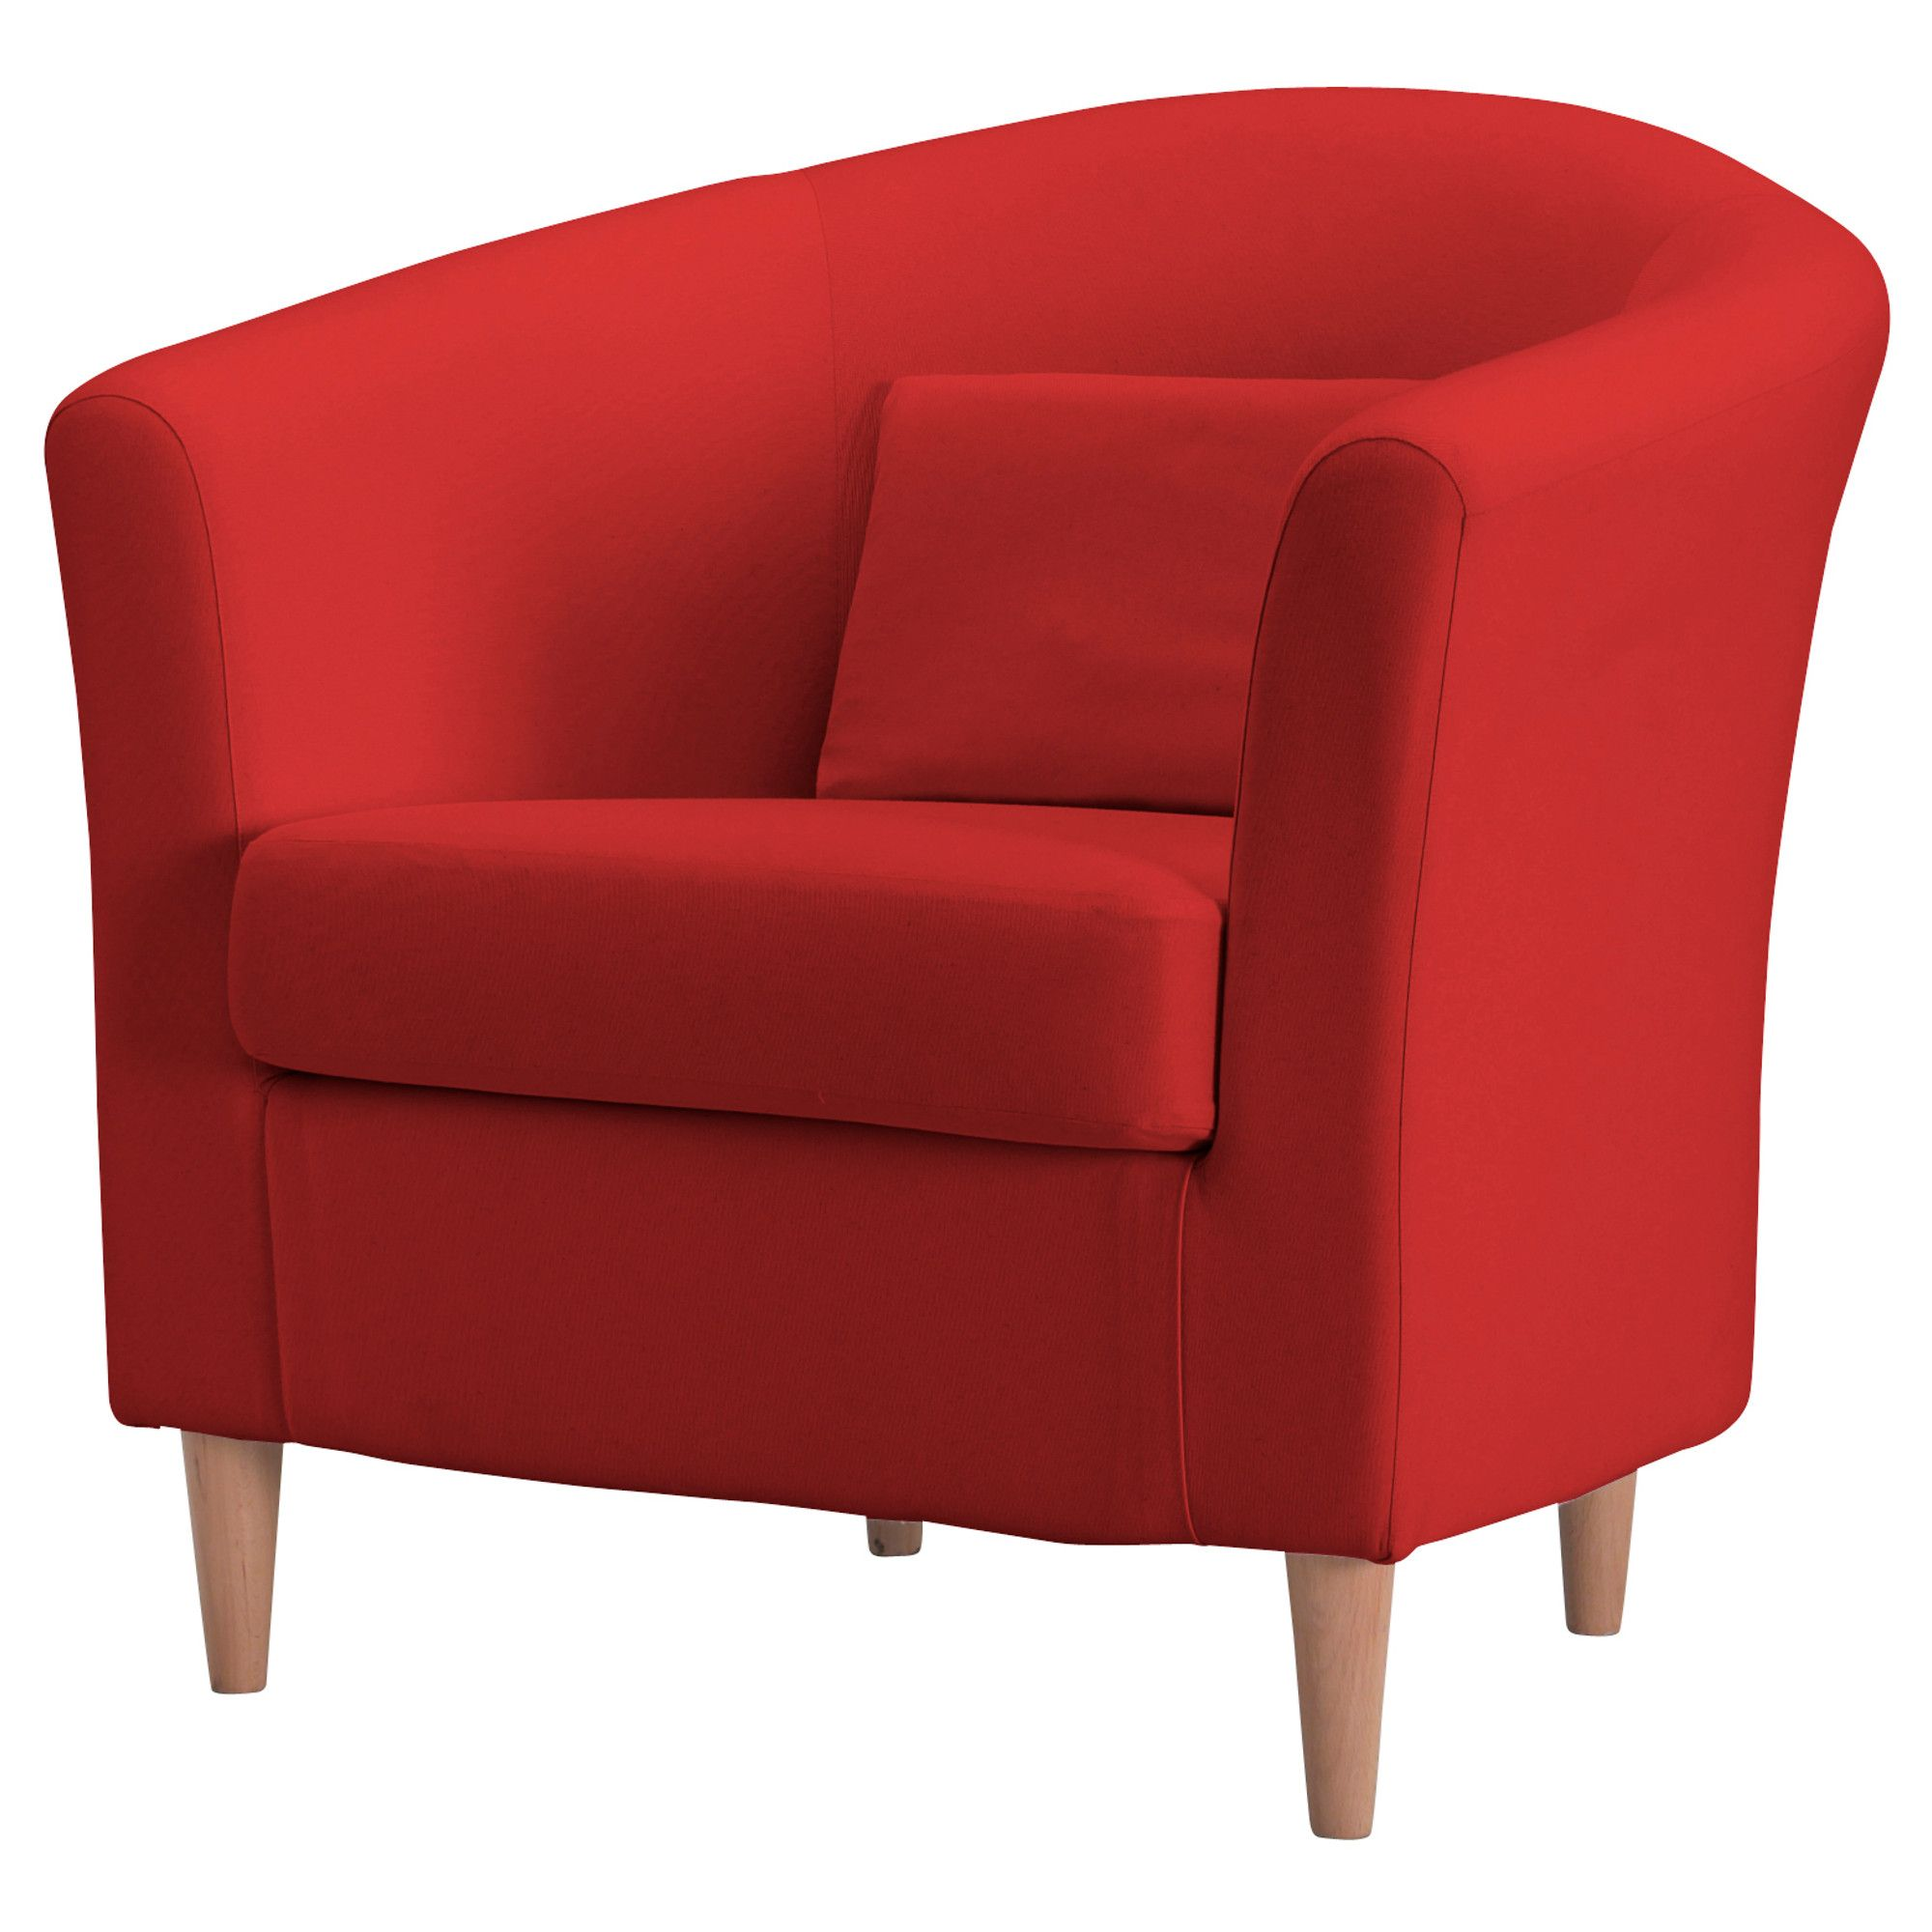 Colourful accent chairs - Tullsta Chair Ransta Red Ikea 99 00